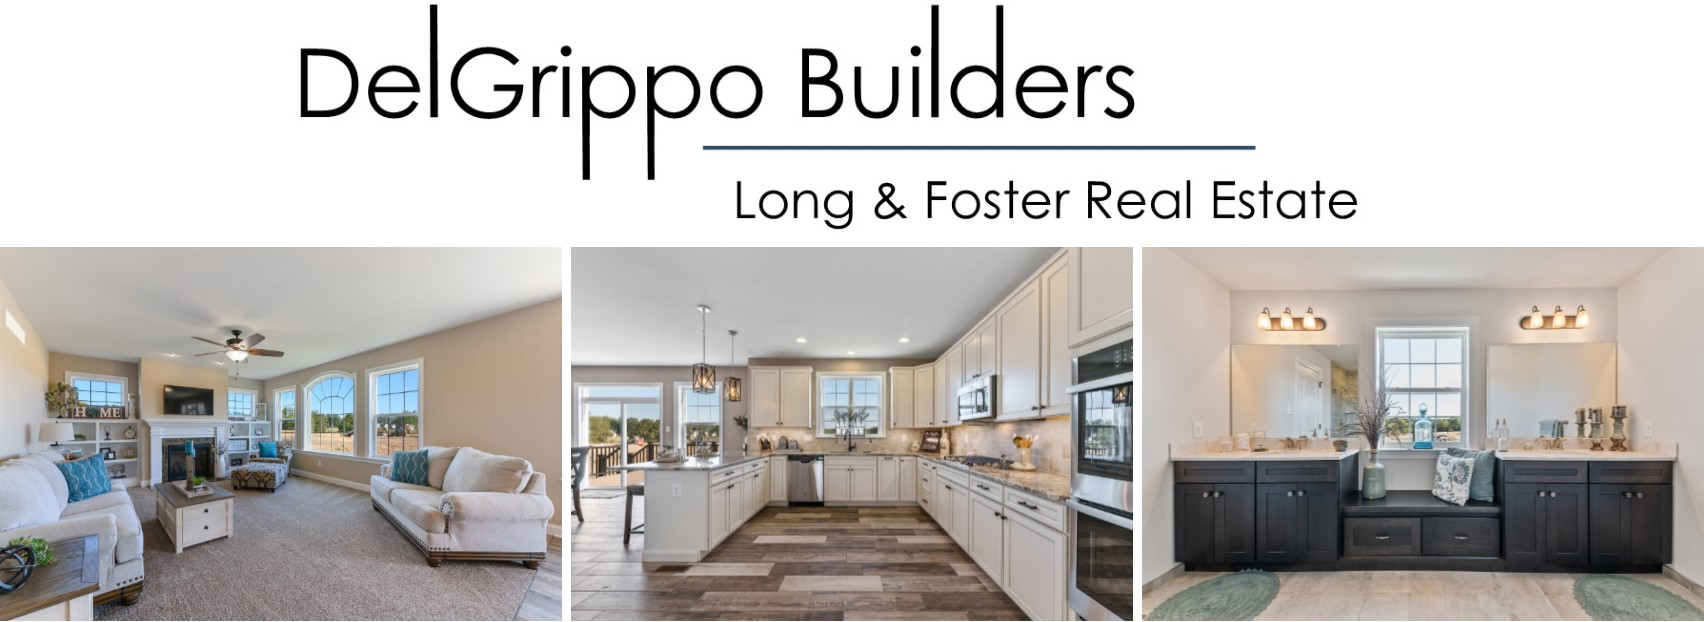 DelGrippo Builders New Construction Official Website